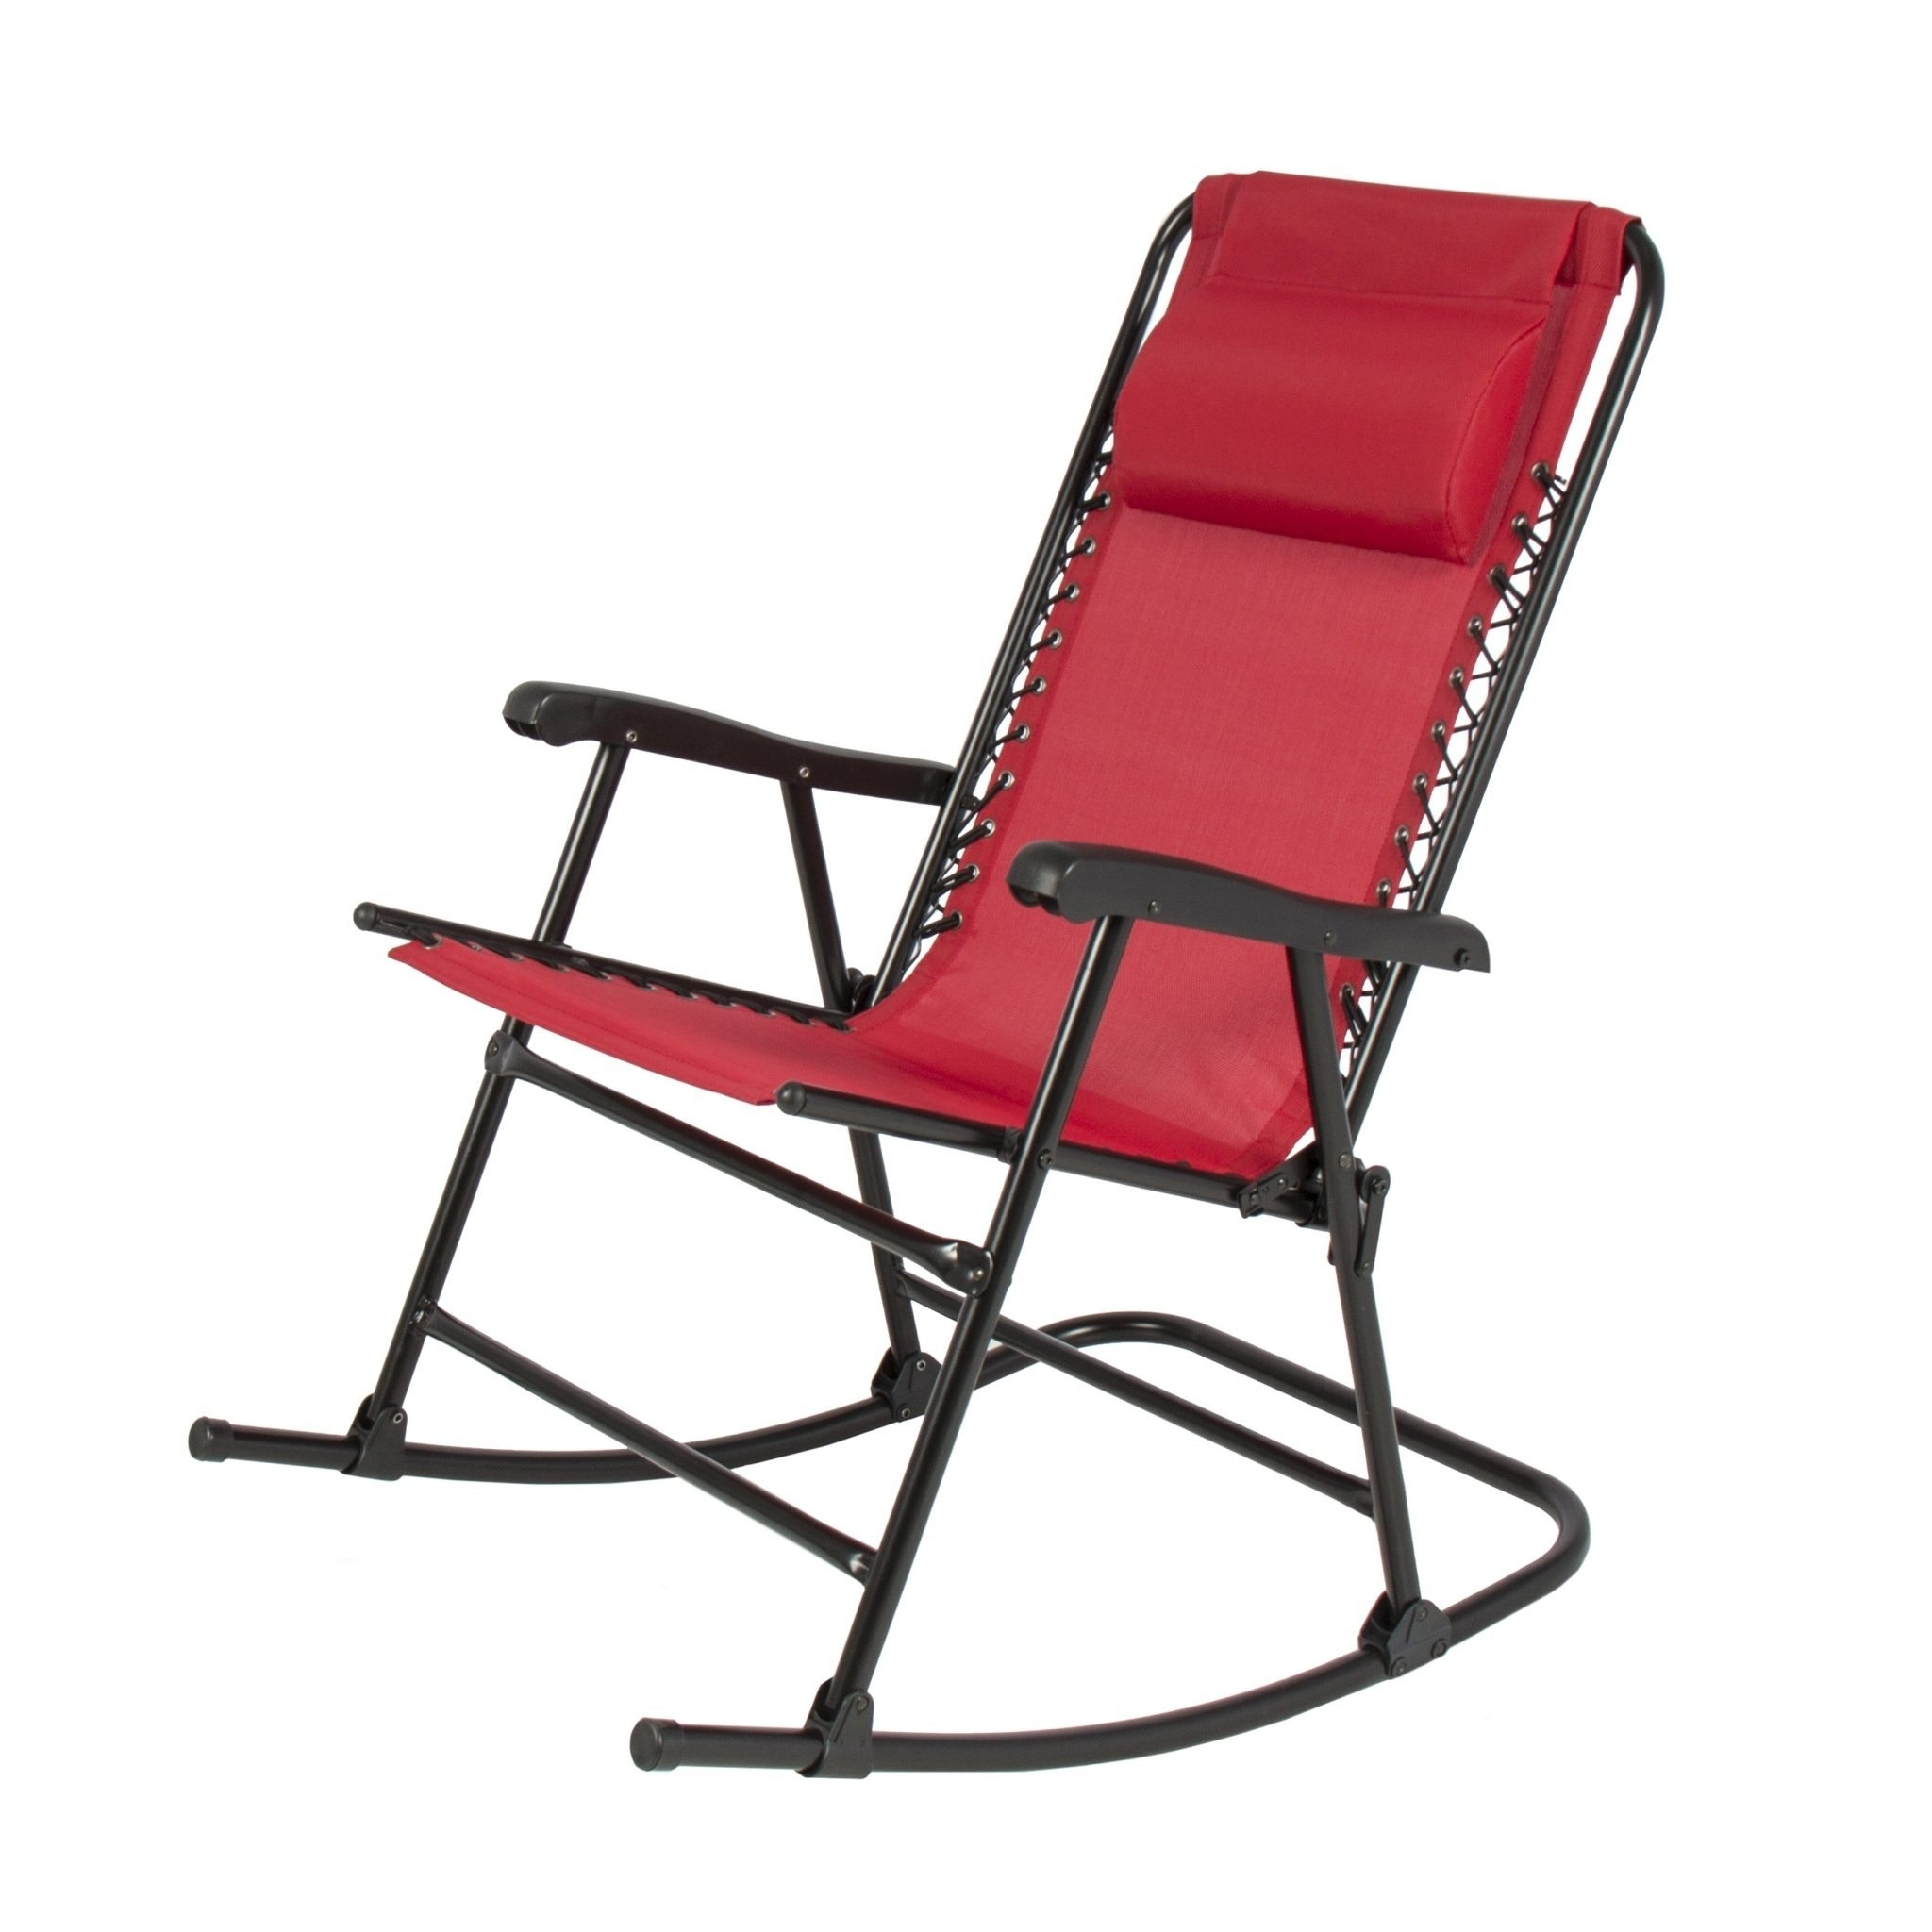 Collection In Folding Patio Table Folding Rocking Chair Foldable Intended For Red Patio Rocking Chairs (View 5 of 15)